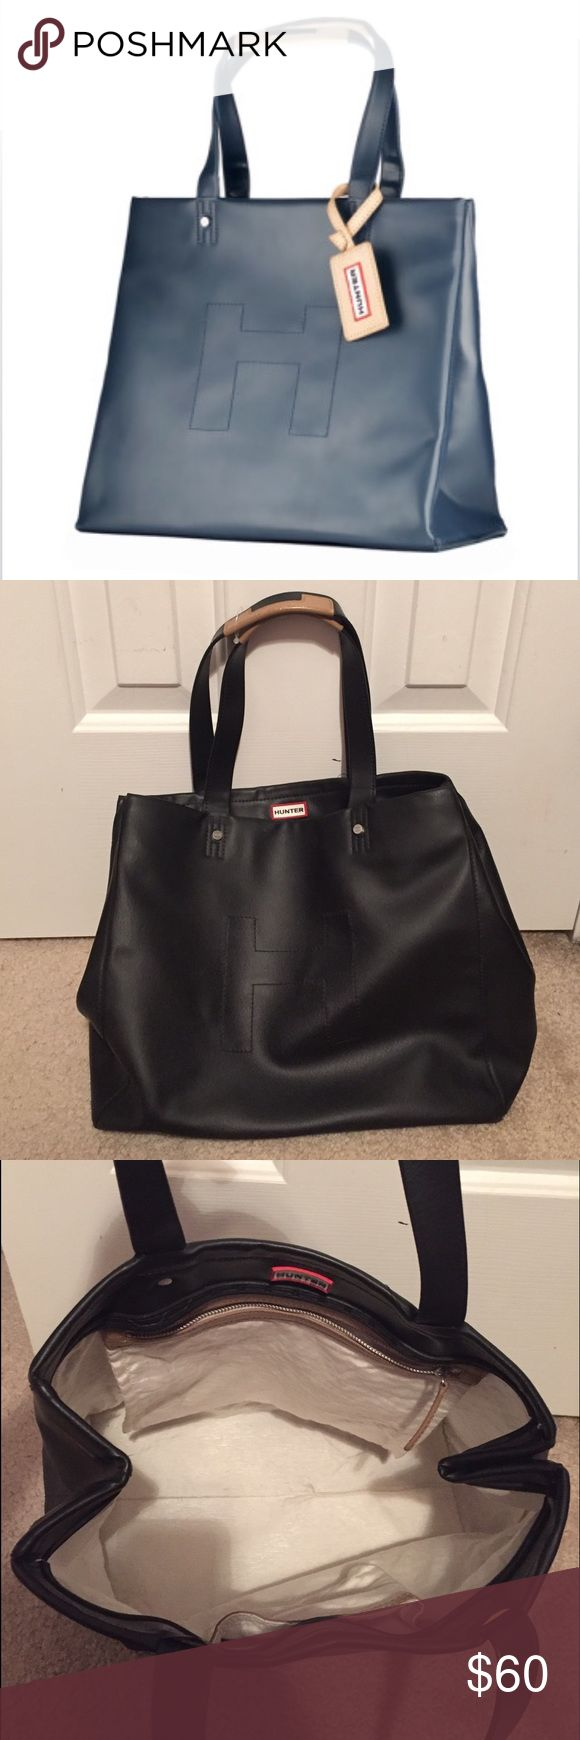 Hunter Boots Black Rubber Handbag Rubber material, easy to clean! Interior is in excellent condition! Very similar to stock image! Hunter Boots Bags Shoulder Bags